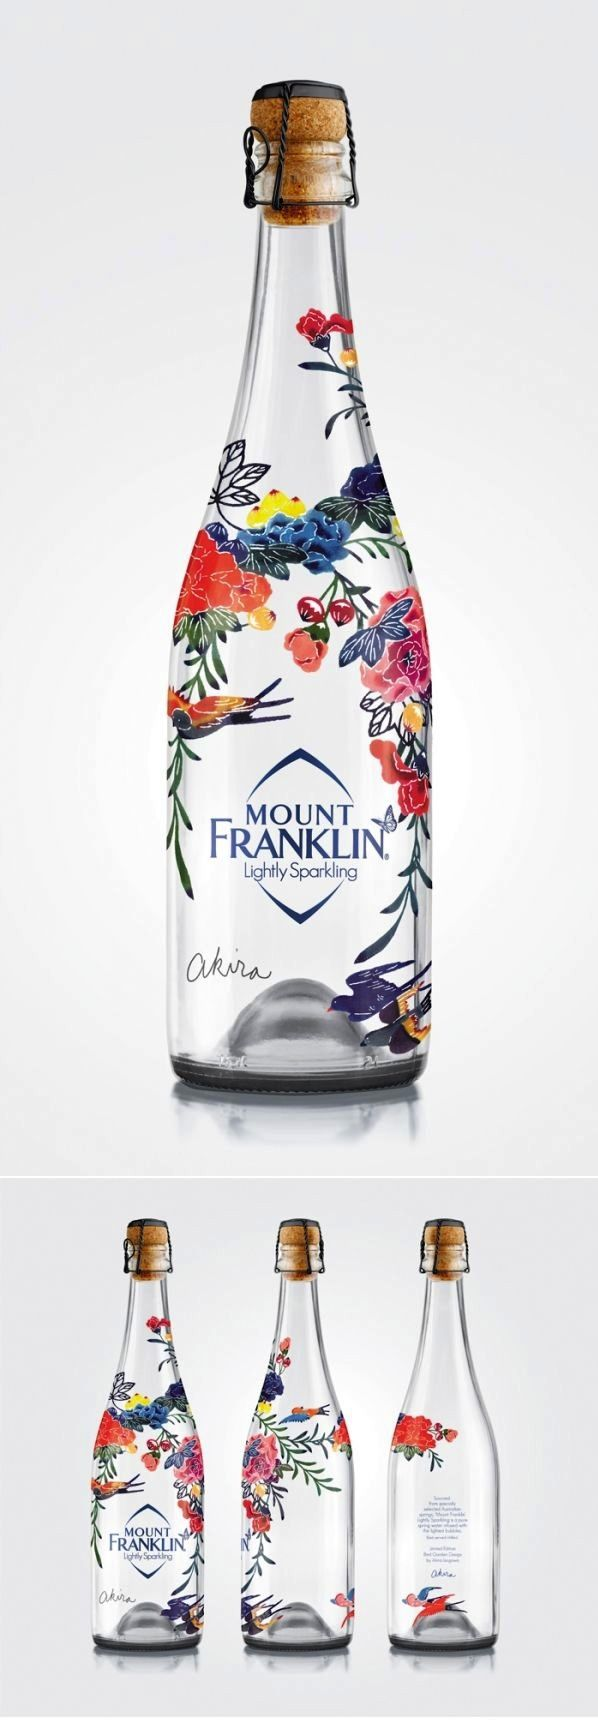 Mount Franklin Lightly Sparkling – Has a sense of occasion for premium water in high-end restaurants